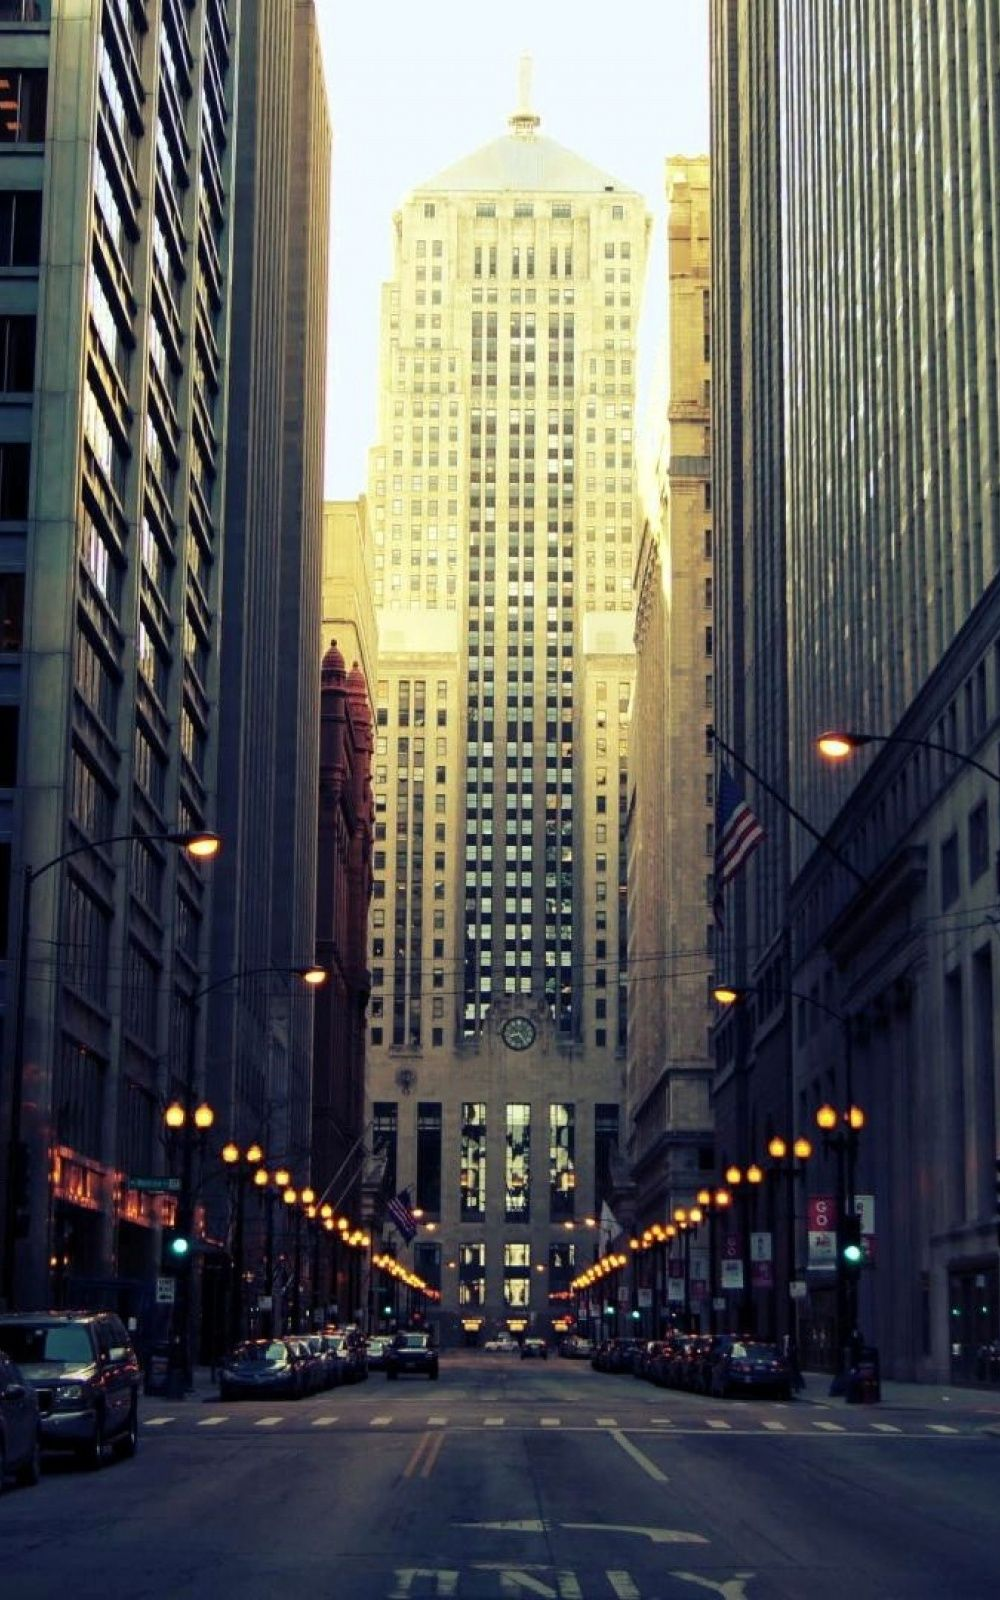 IPhone 6 Chicago Wallpapers HD, Desktop Backgrounds 750x1334 | Epic Car Wallpapers